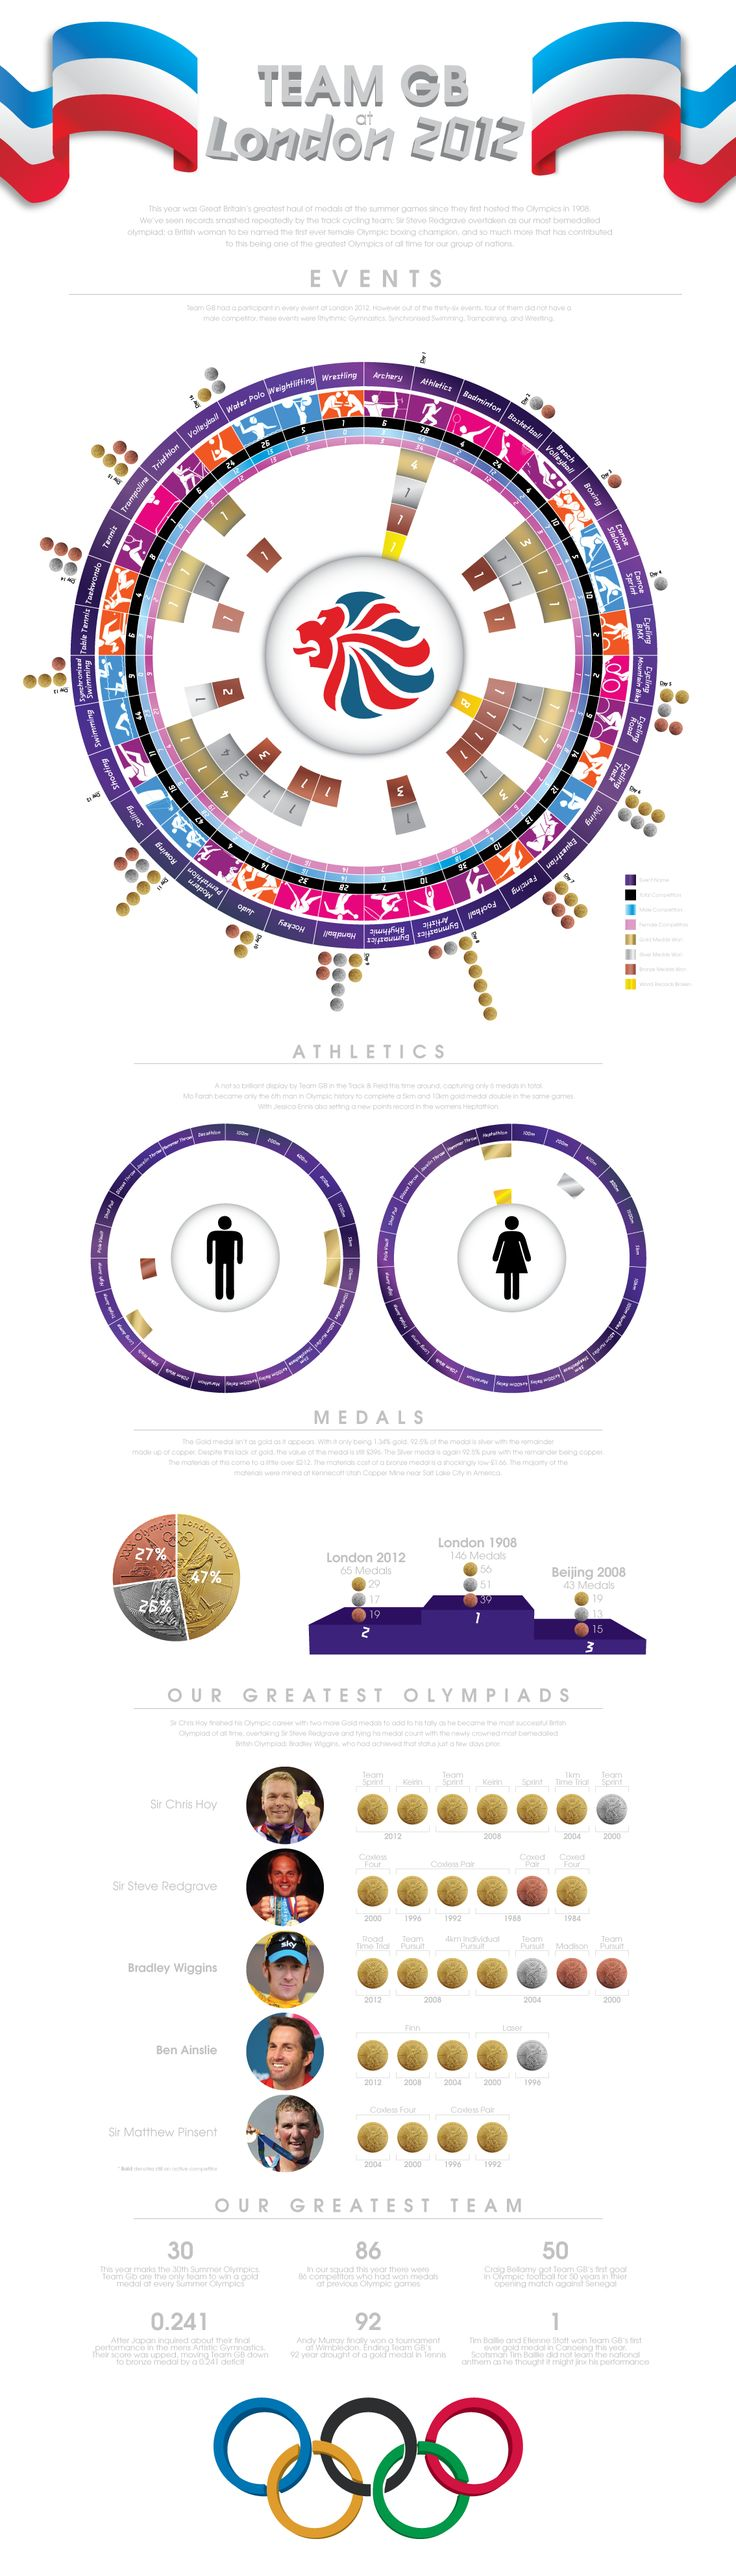 A look at the medals achieved by Team GB at the 2012 Summer Games in London